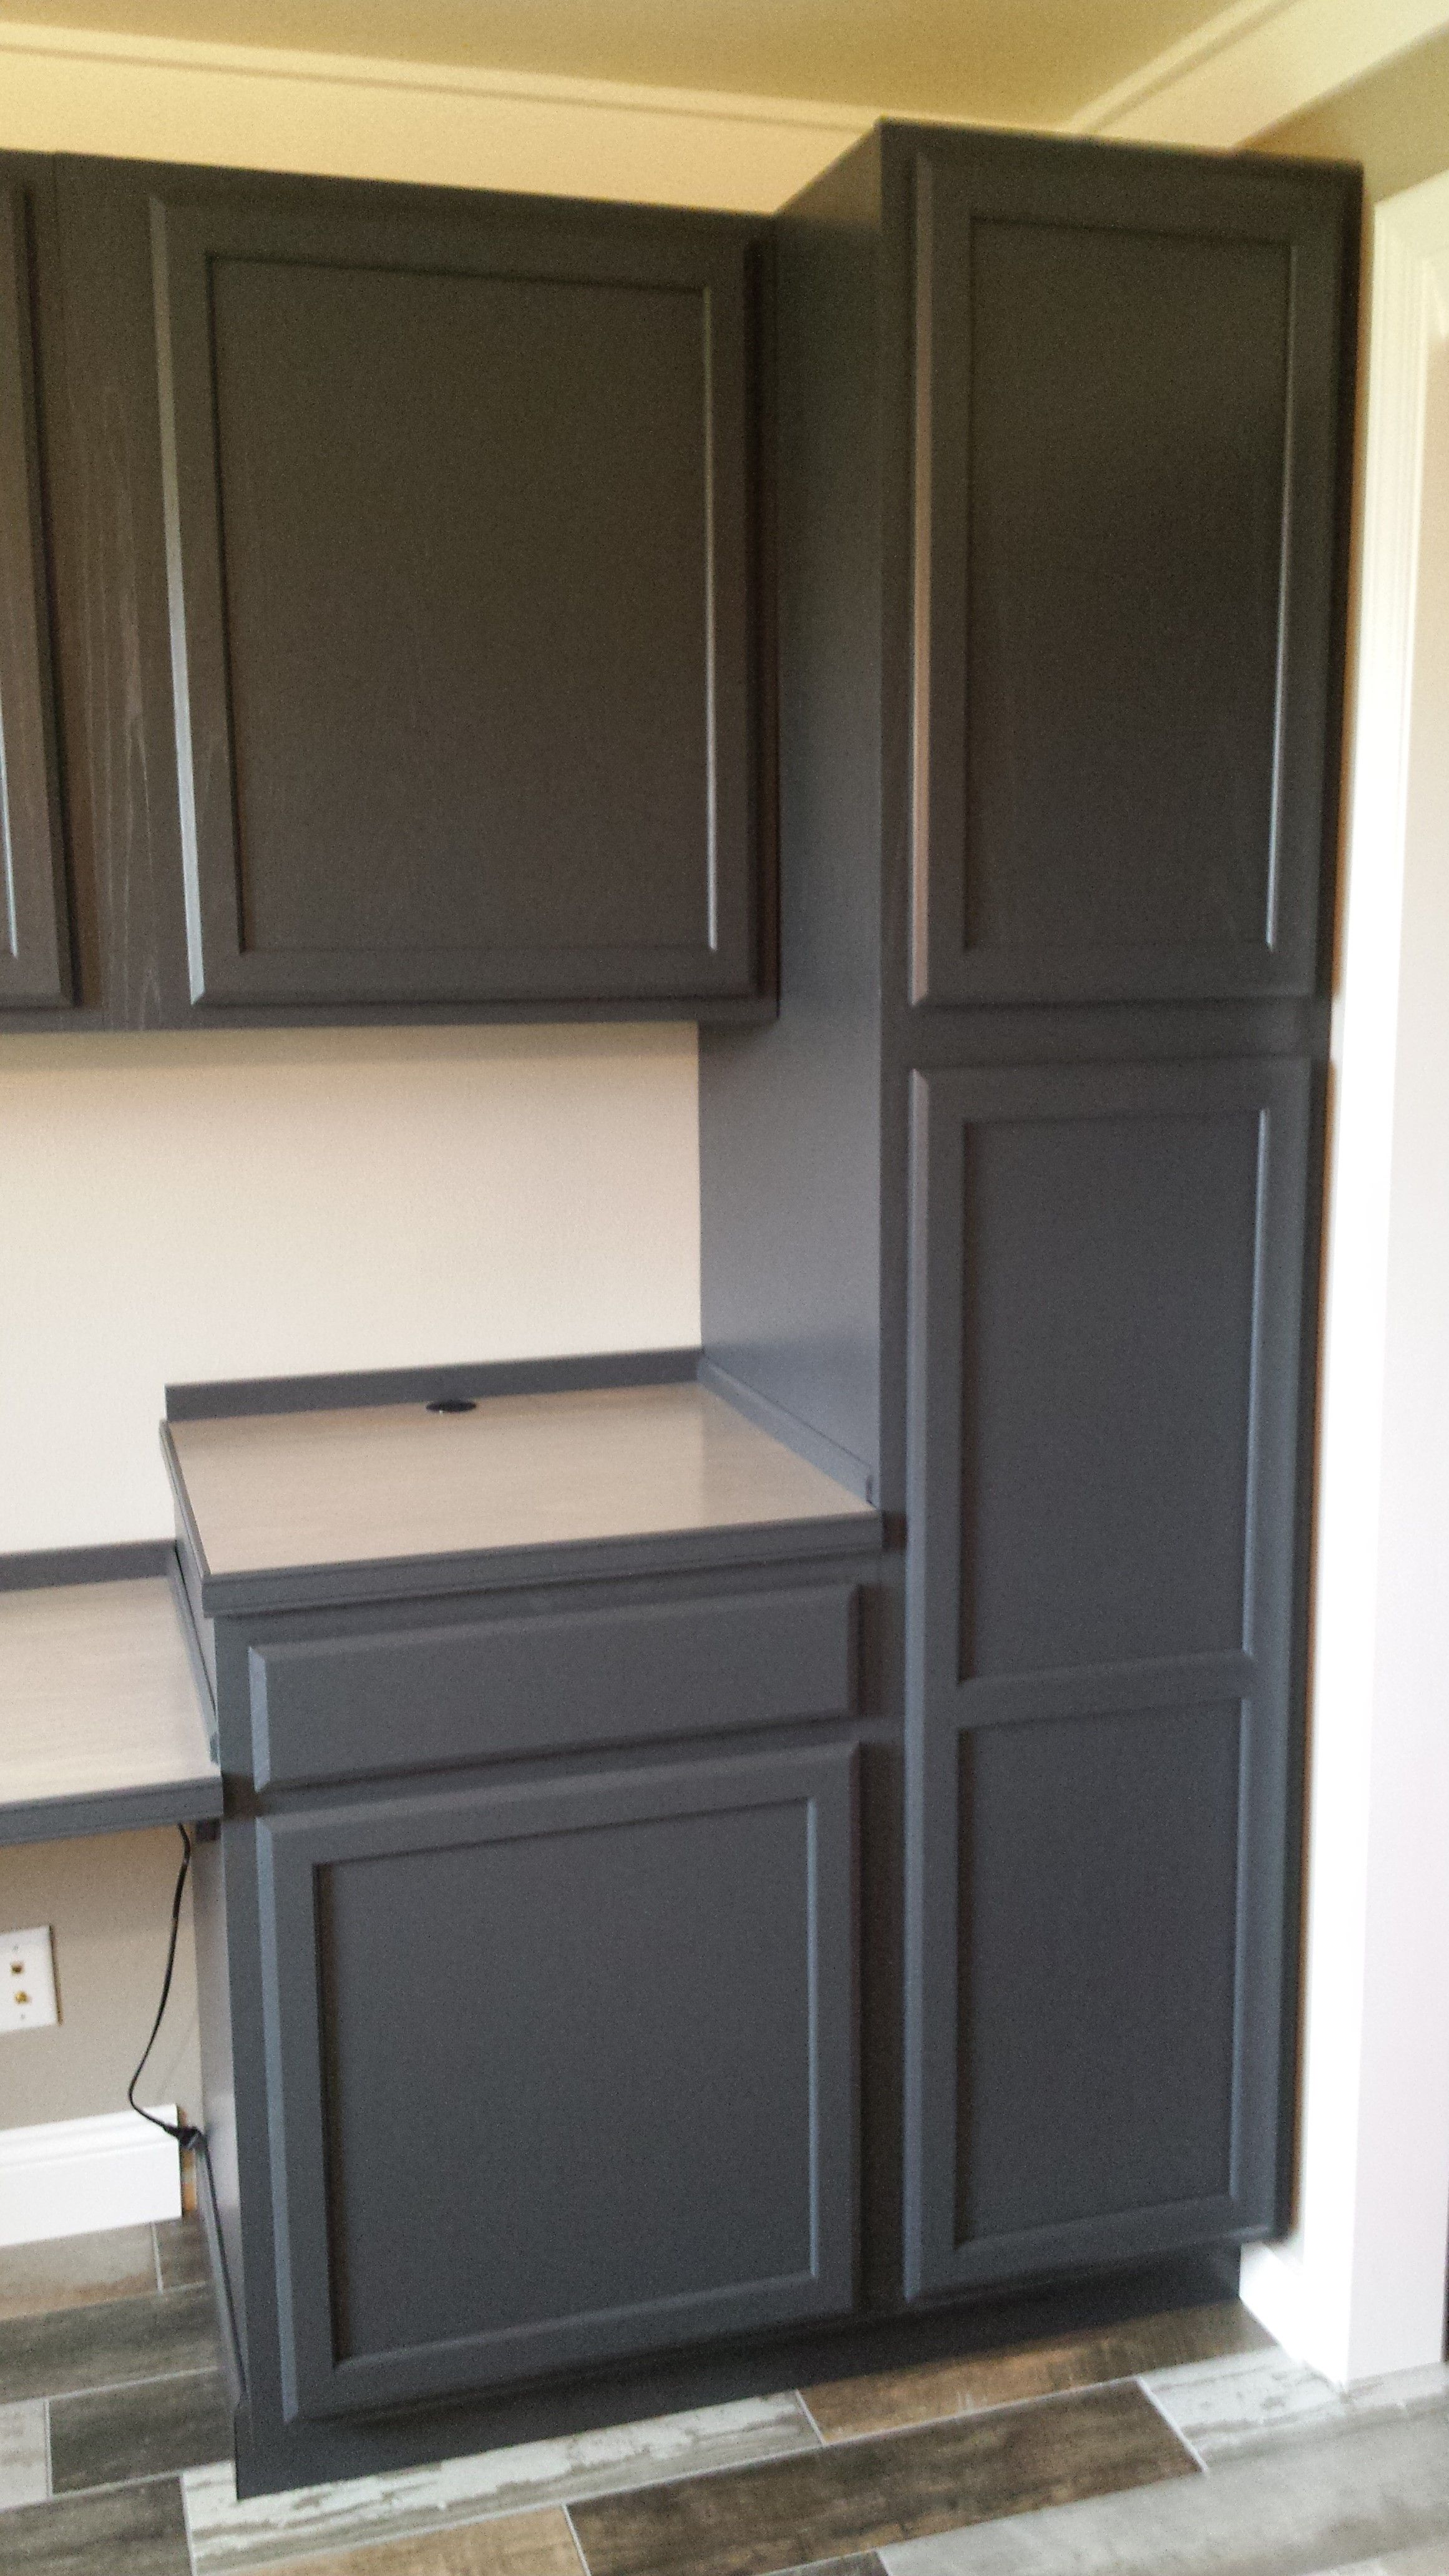 Finished Cabinets Painted In Behr Cracked Pepper In 2019